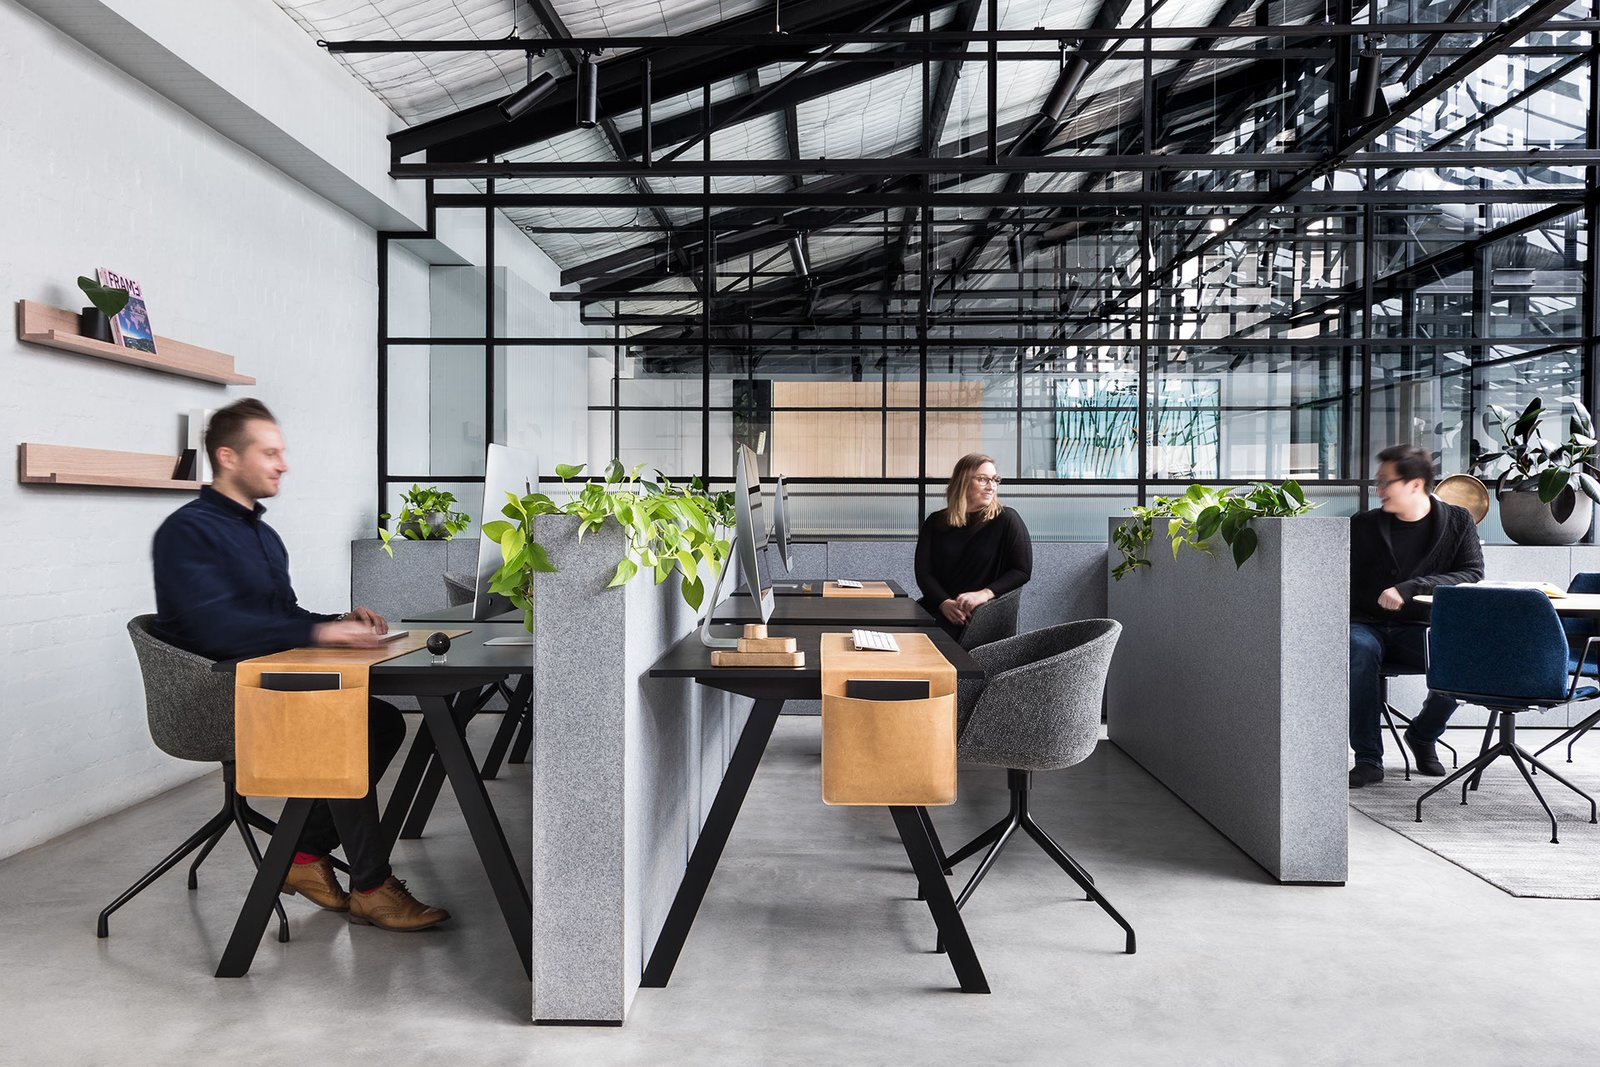 Office, Study Room Type, Chair, Desk, Shelves, and Concrete Floor An art deco warehouse conversion in Melbourne is home to two creative enterprises that share a common boardroom, kitchen and breakout space.  Photo 5 of 9 in 8 Modern Offices That Feel Like Homes